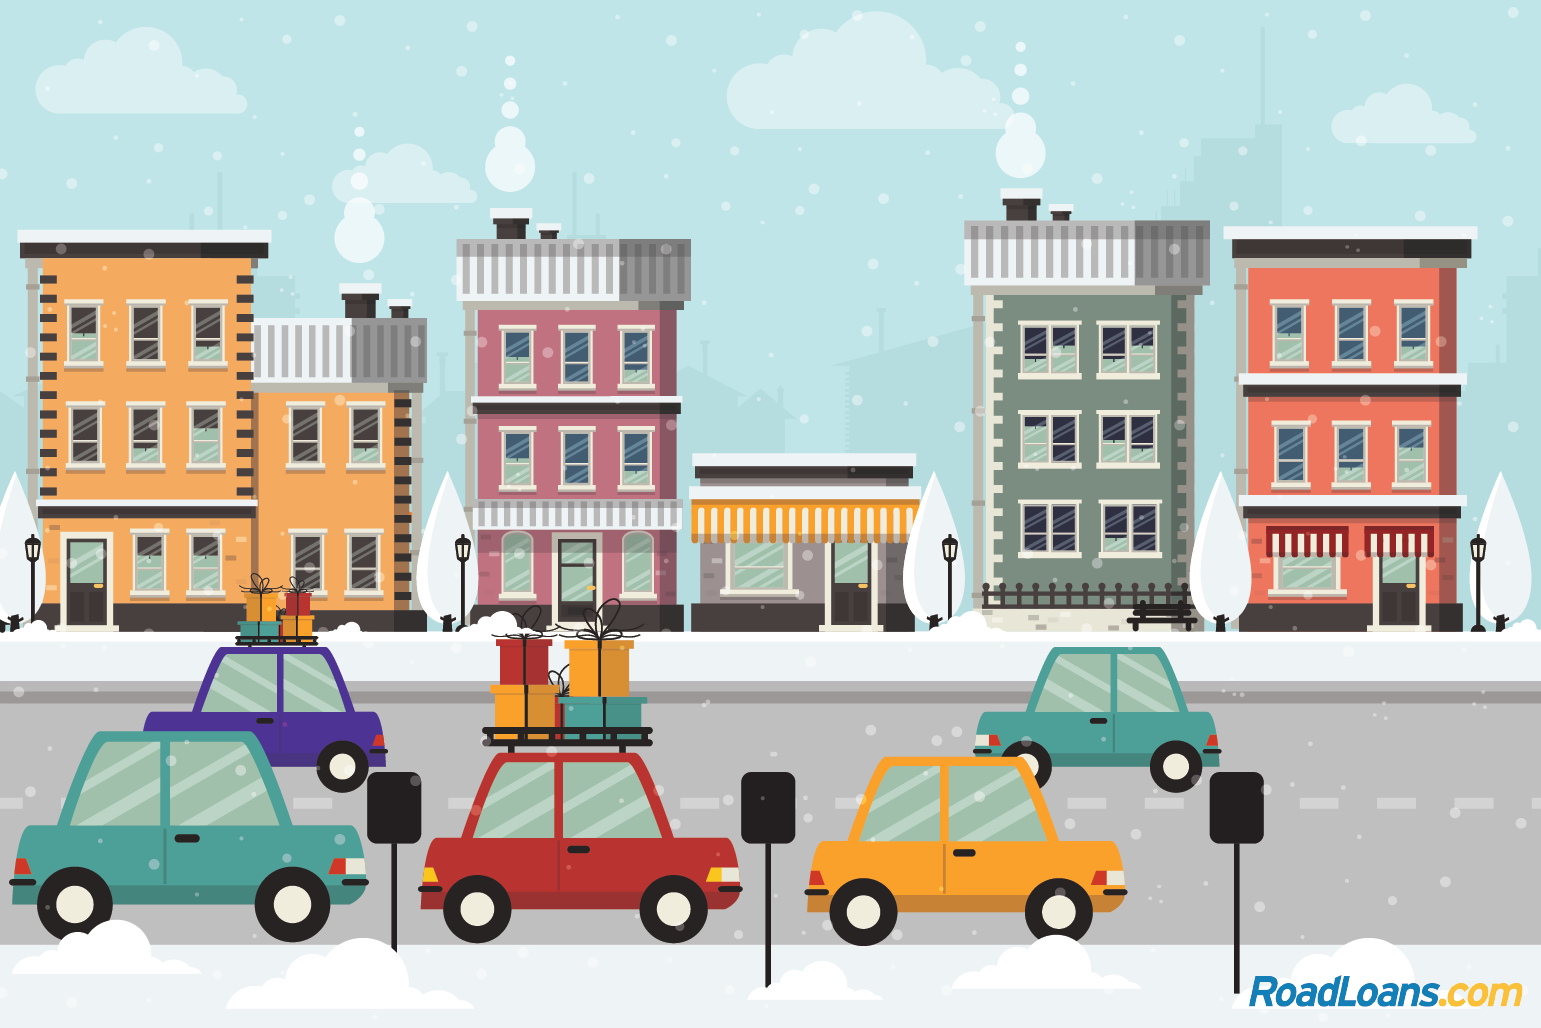 9 easy cars to park for the holidays and beyond